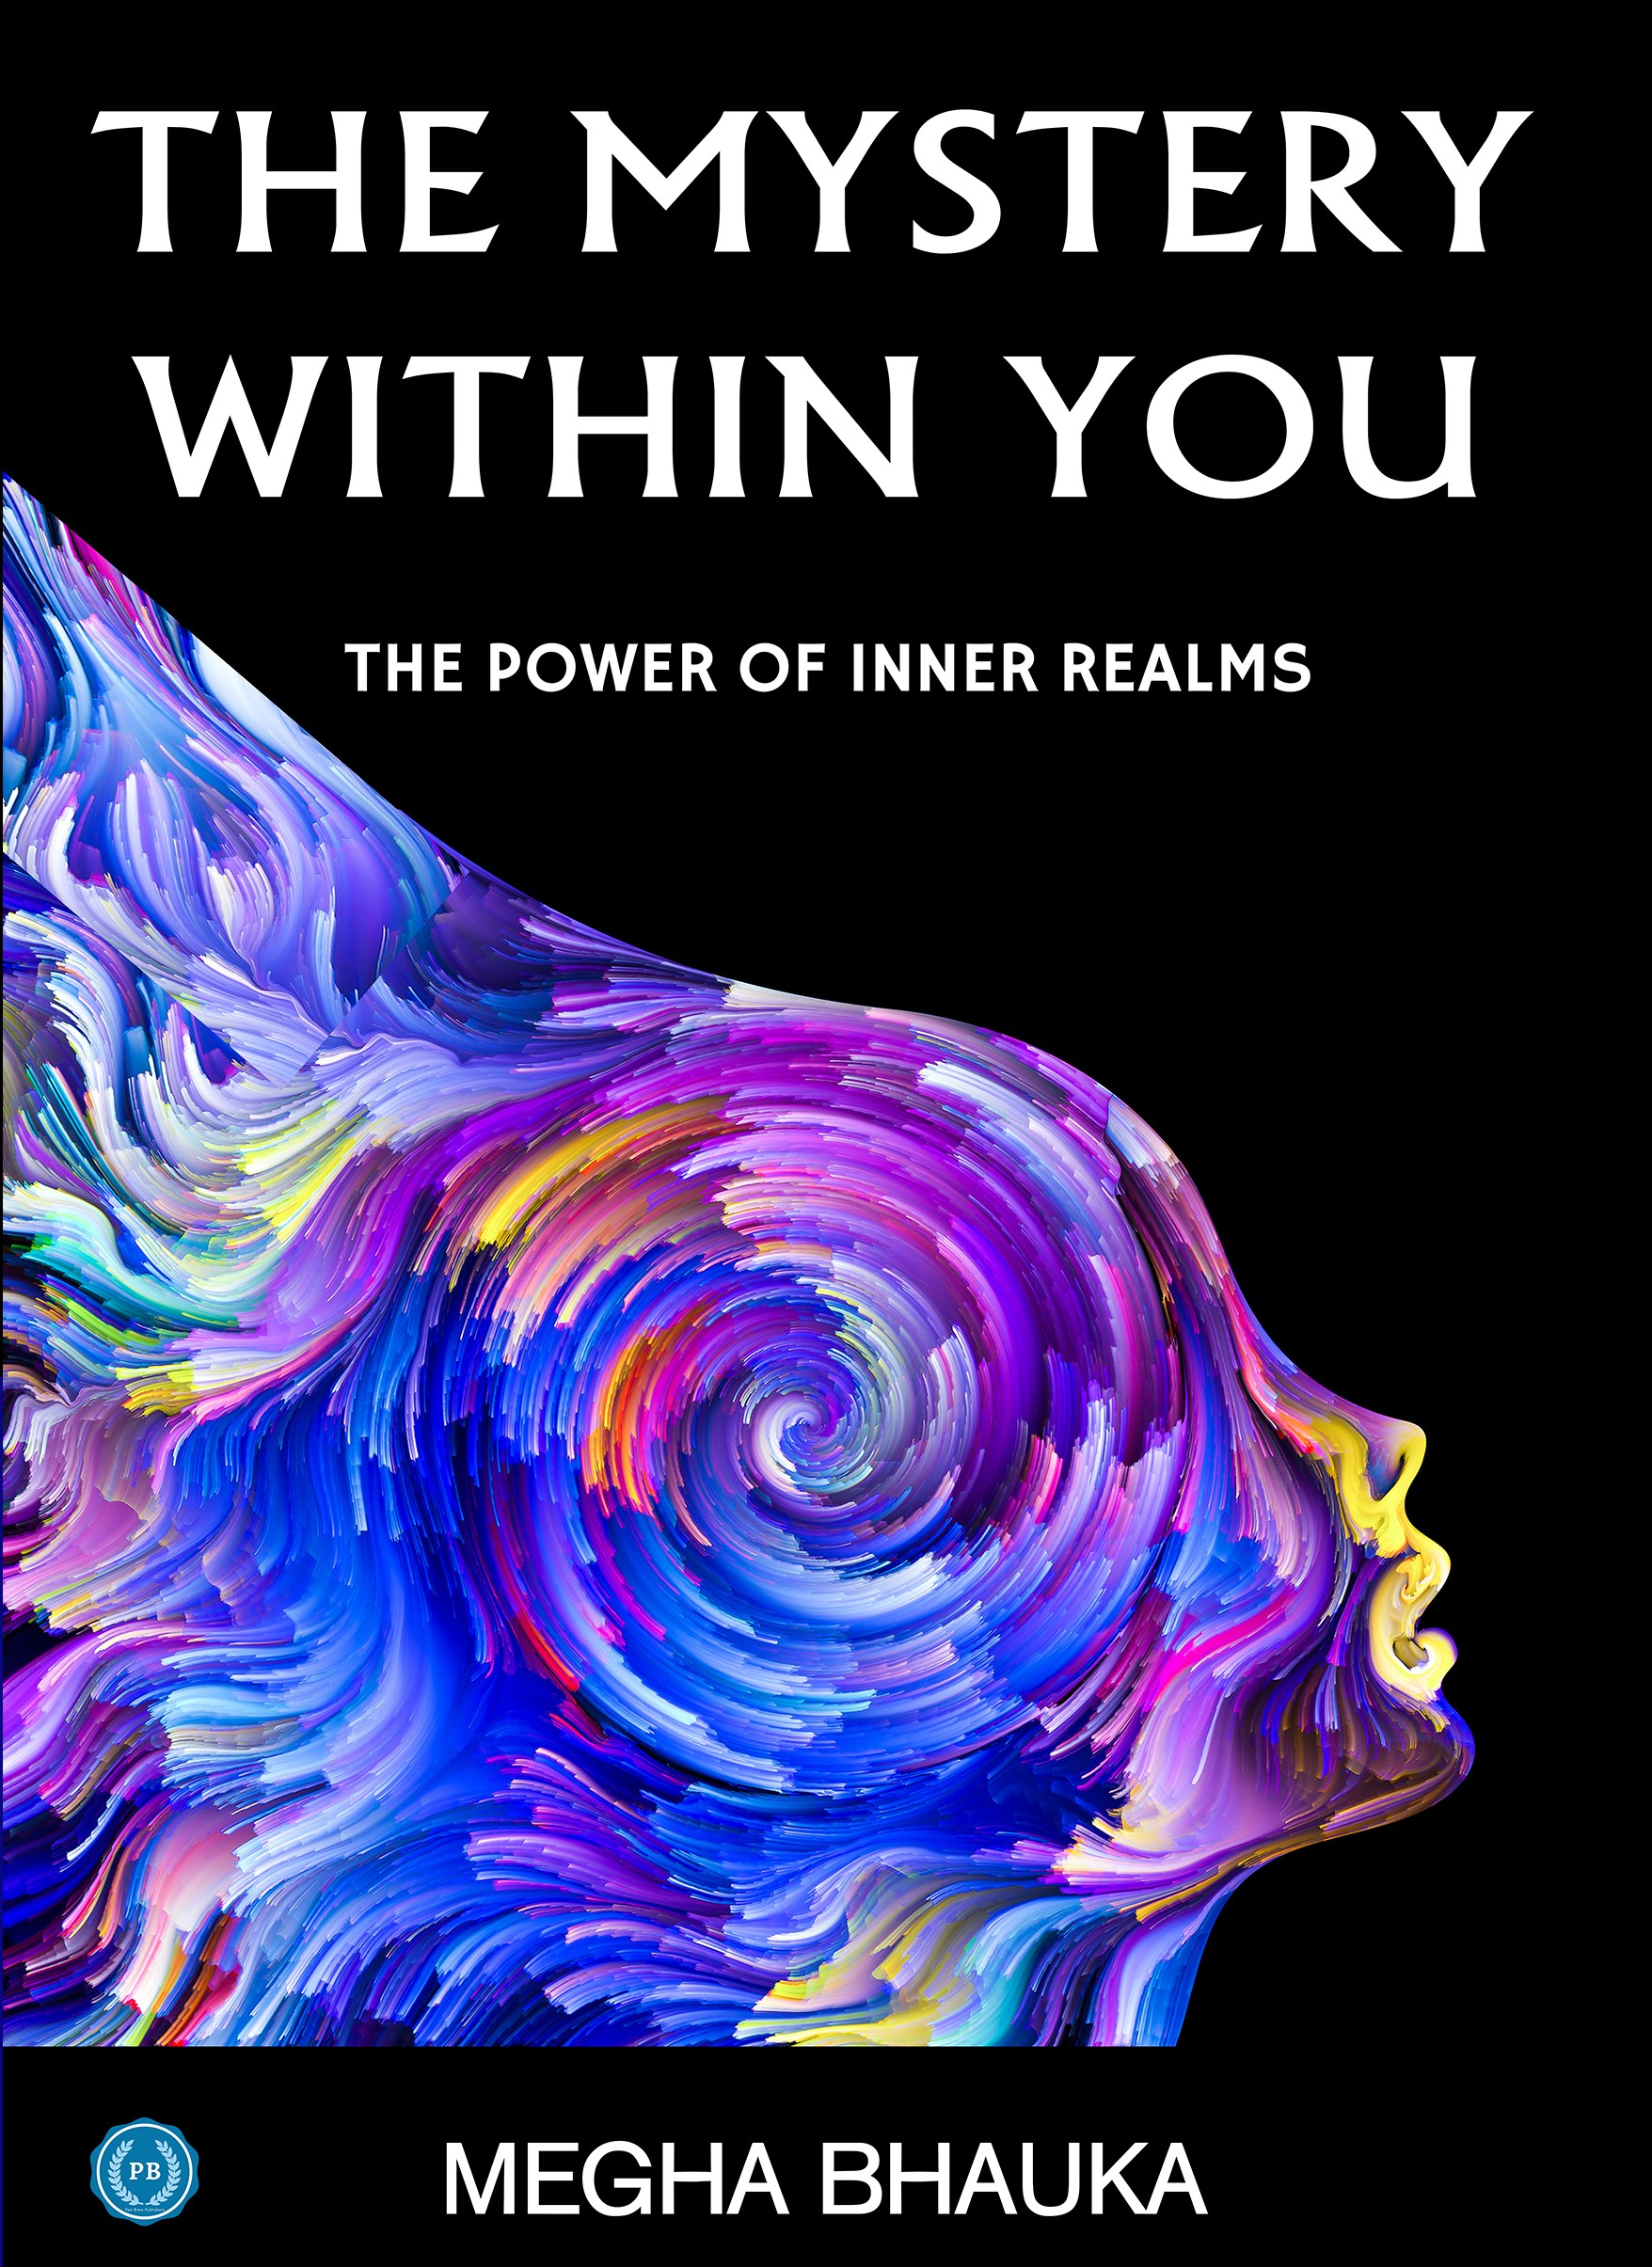 The Mystery Within You by Megha Bhauka